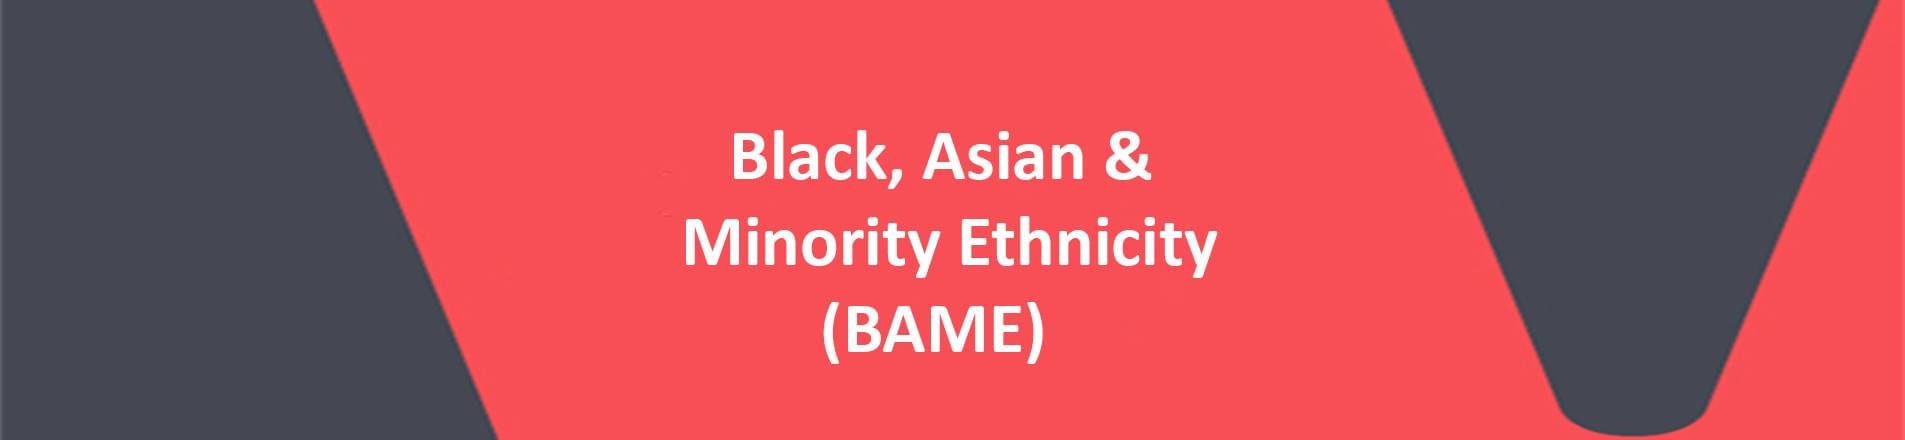 red banner with white text  reading black, asian, minority ethnicity (BAME)